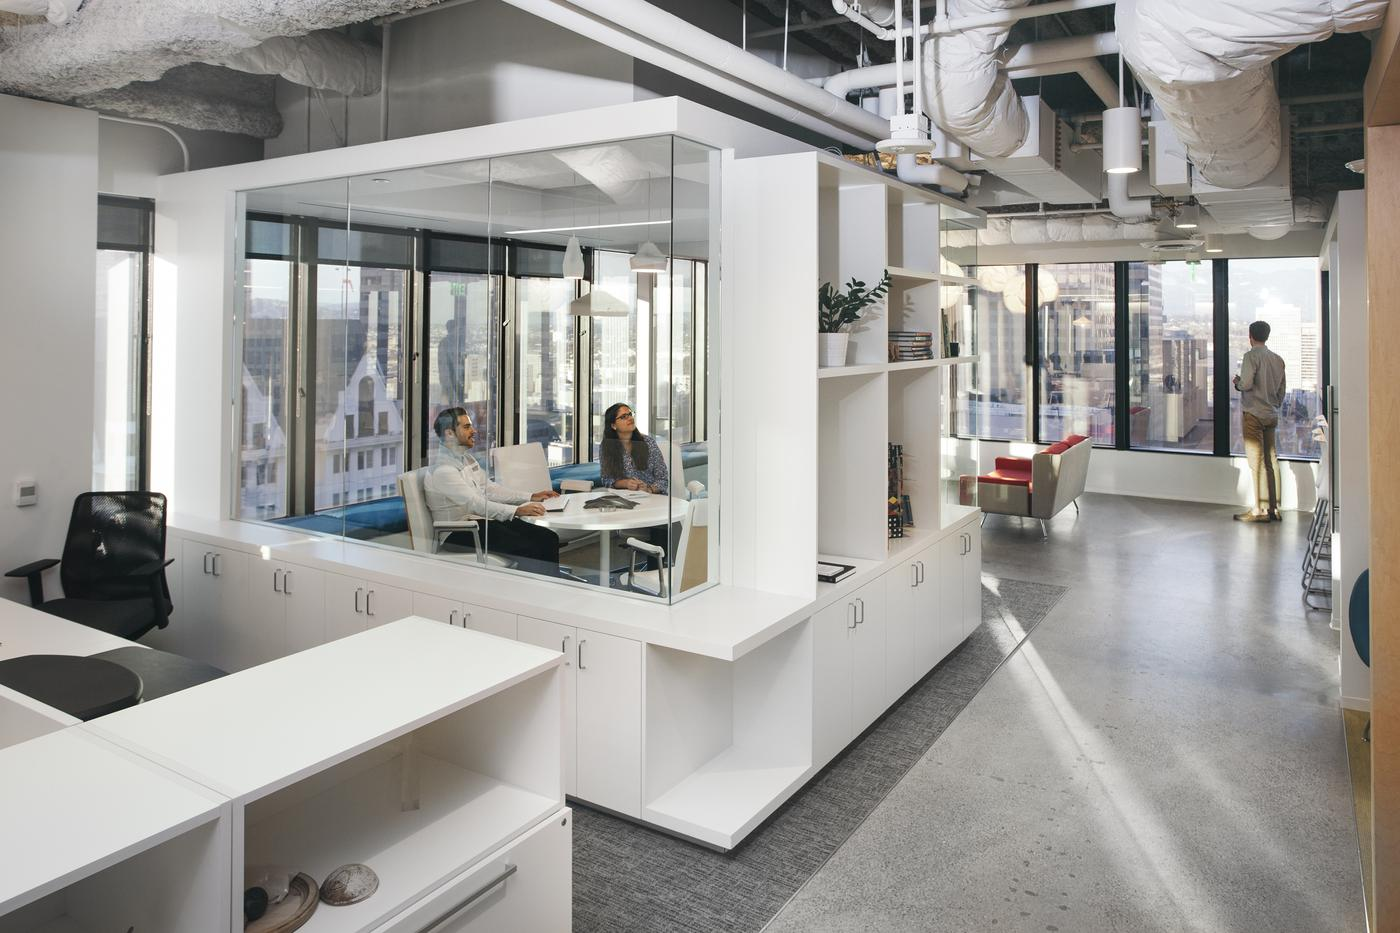 2017 Winner - 'DESIGN IS' Market Winner: Small Office